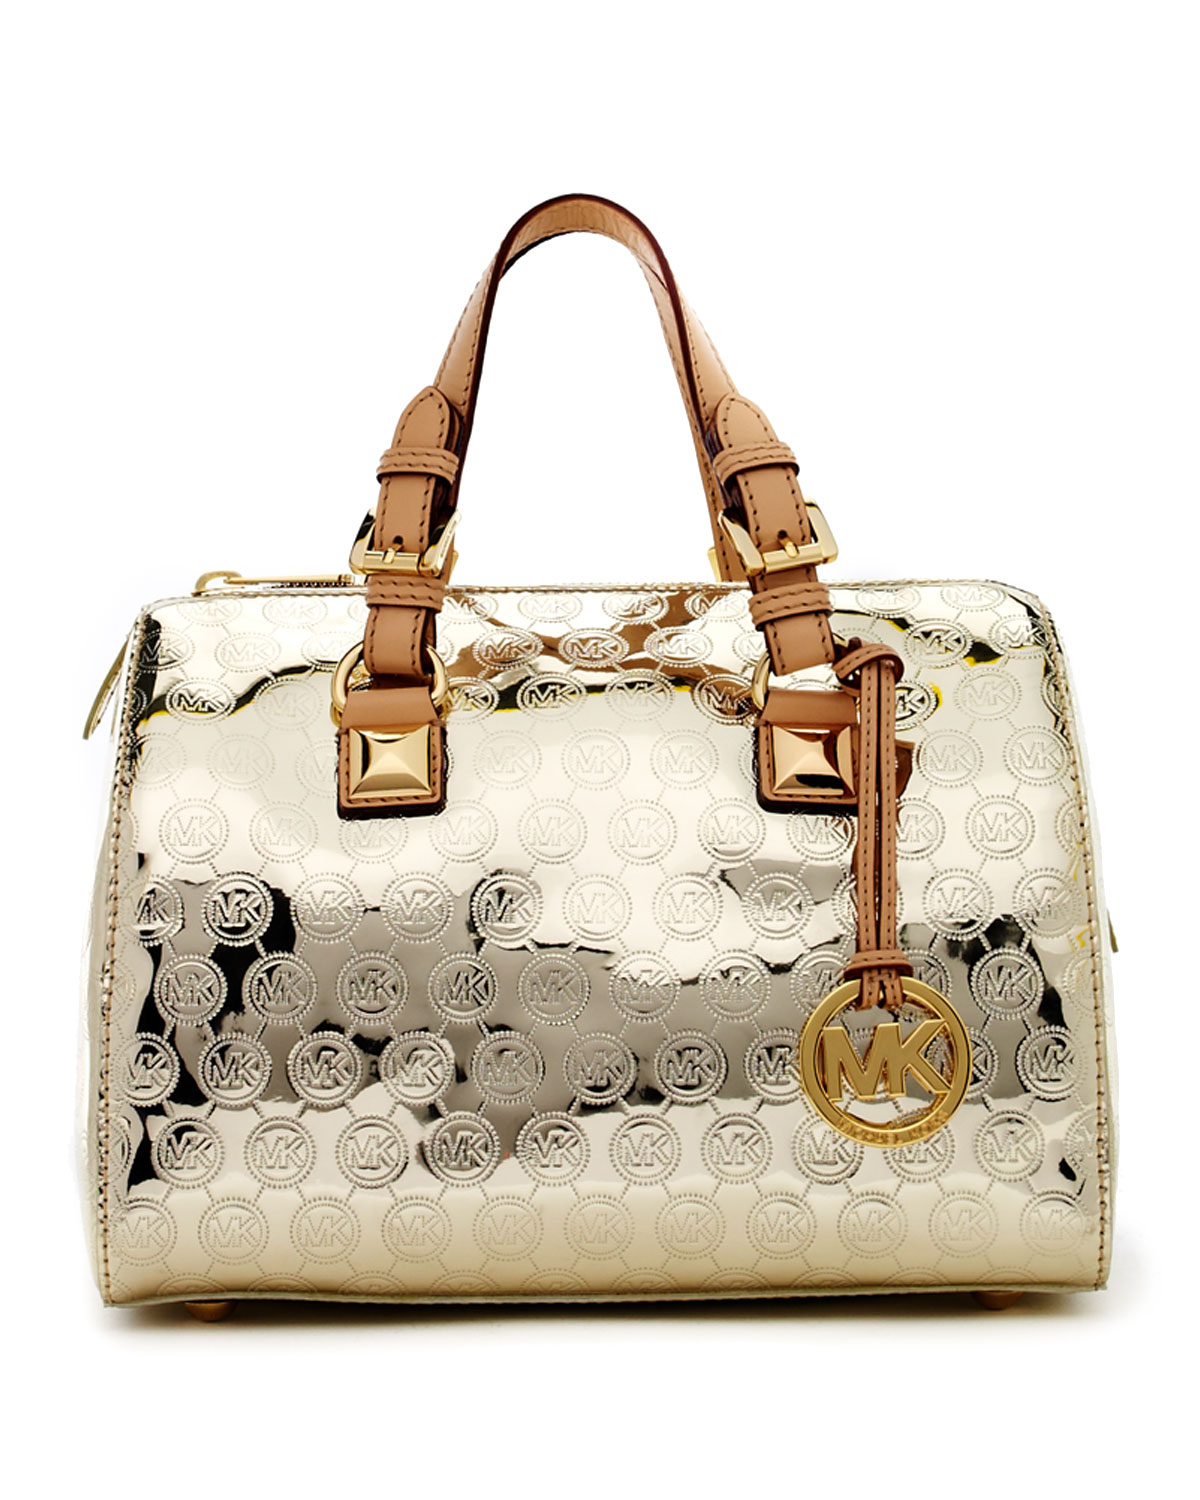 667e1331770567 Gallery. Previously sold at: Neiman Marcus · Women's Michael Kors Grayson